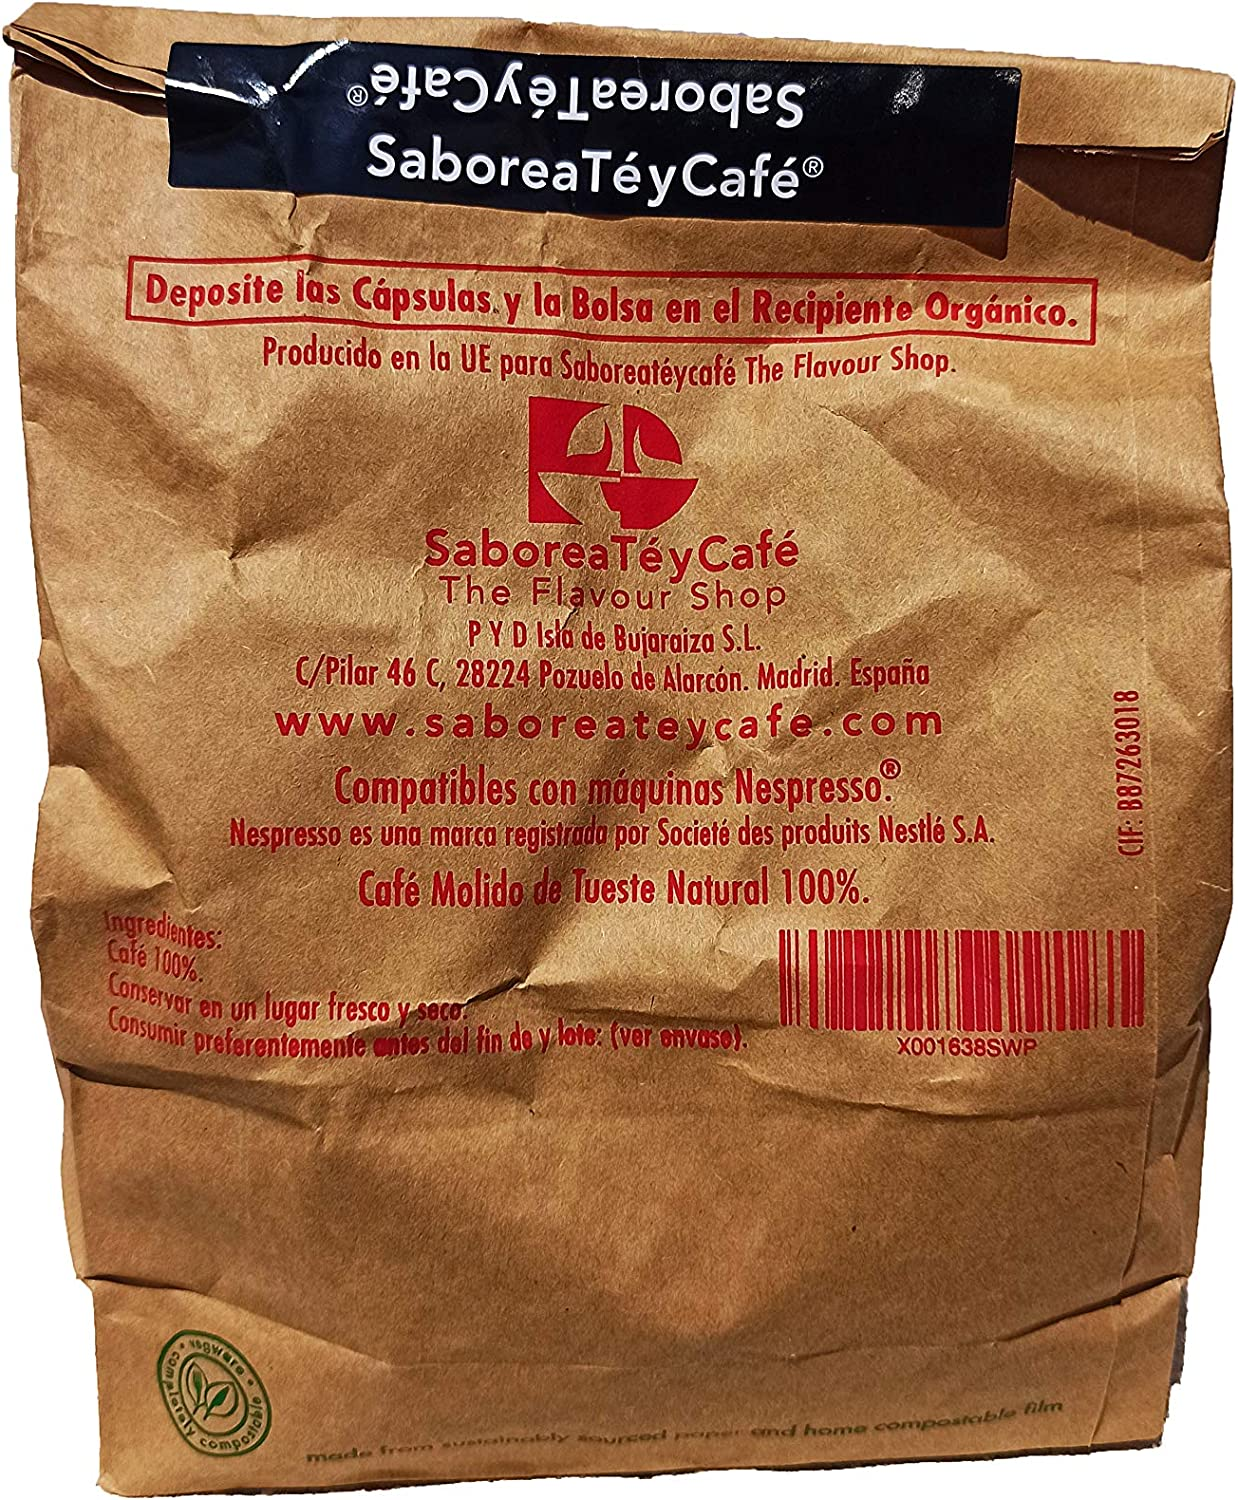 SABOREATE Y CAFE THE FLAVOUR SHOP - Cápsulas de Café Intenso ...